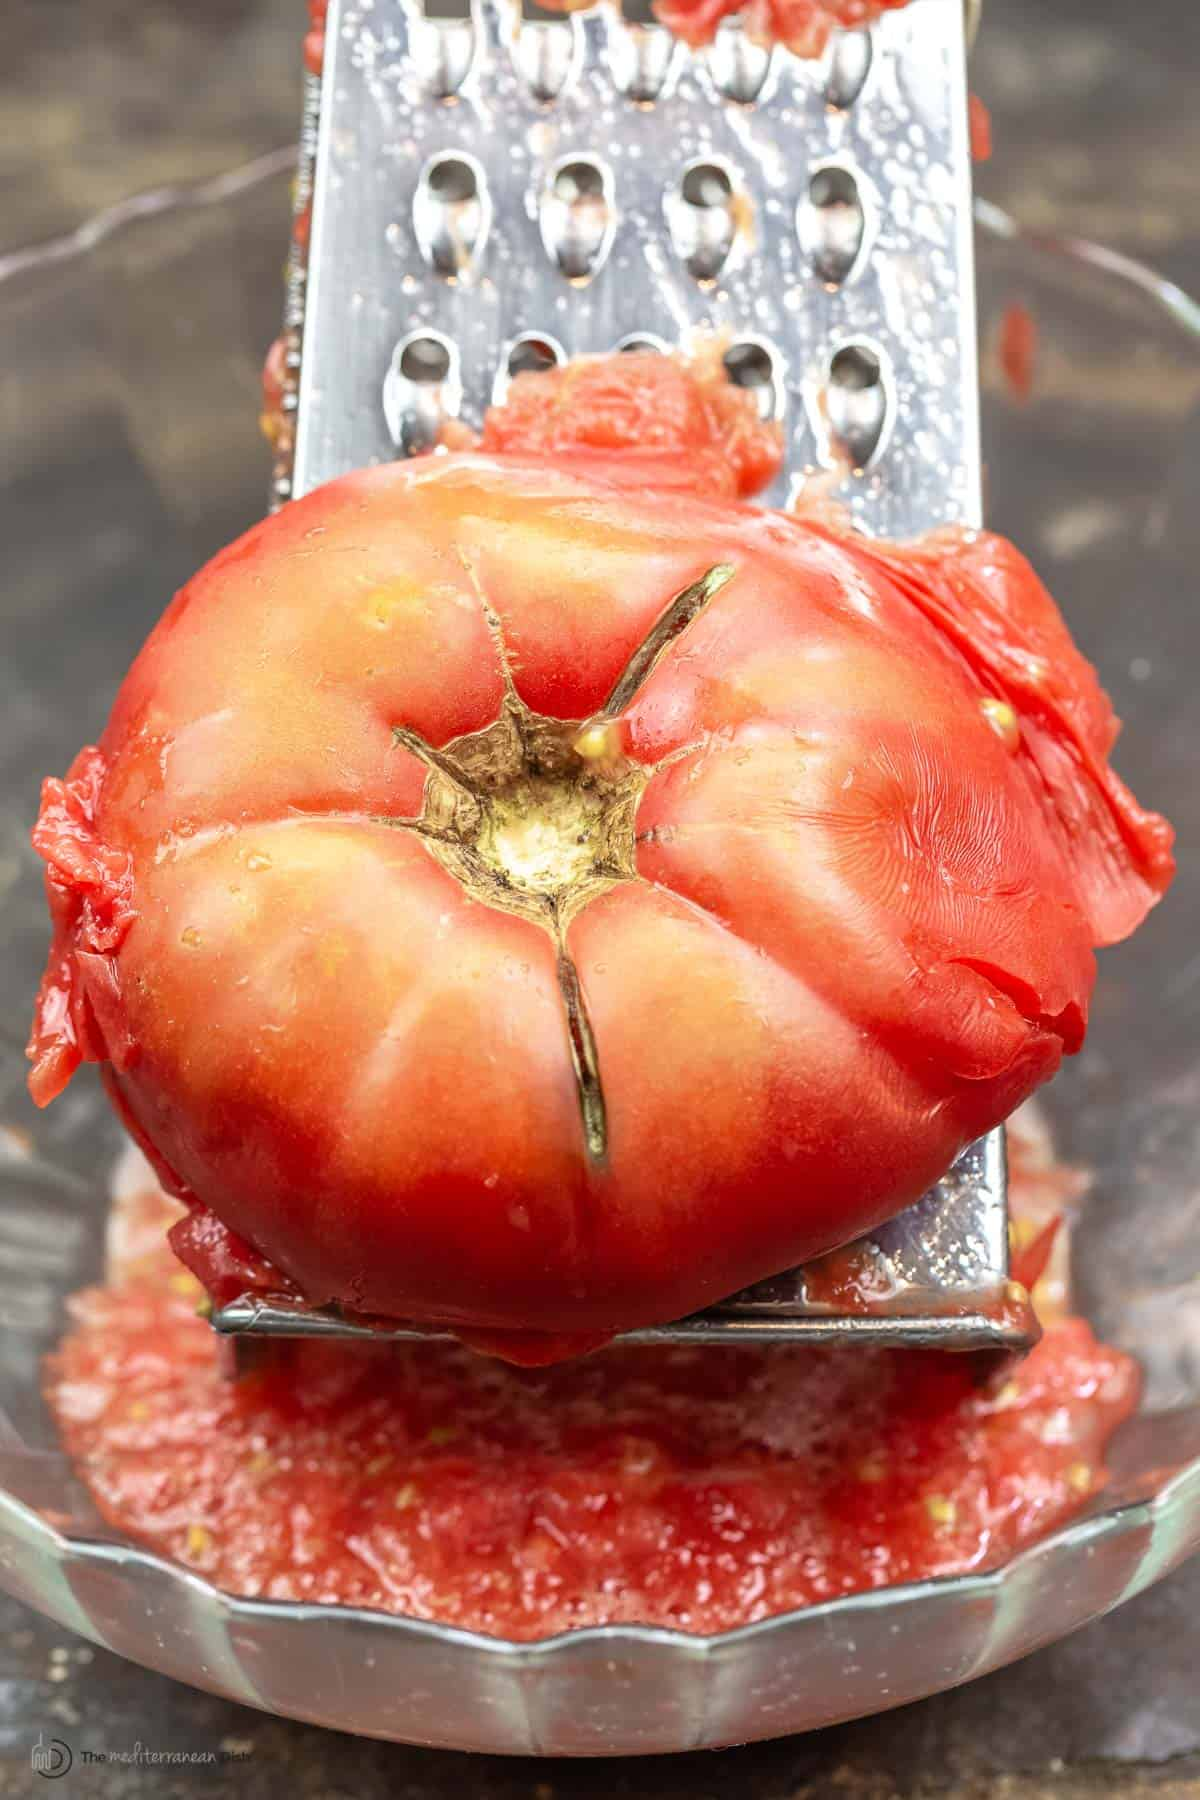 Close up of a tomato over a hand grater